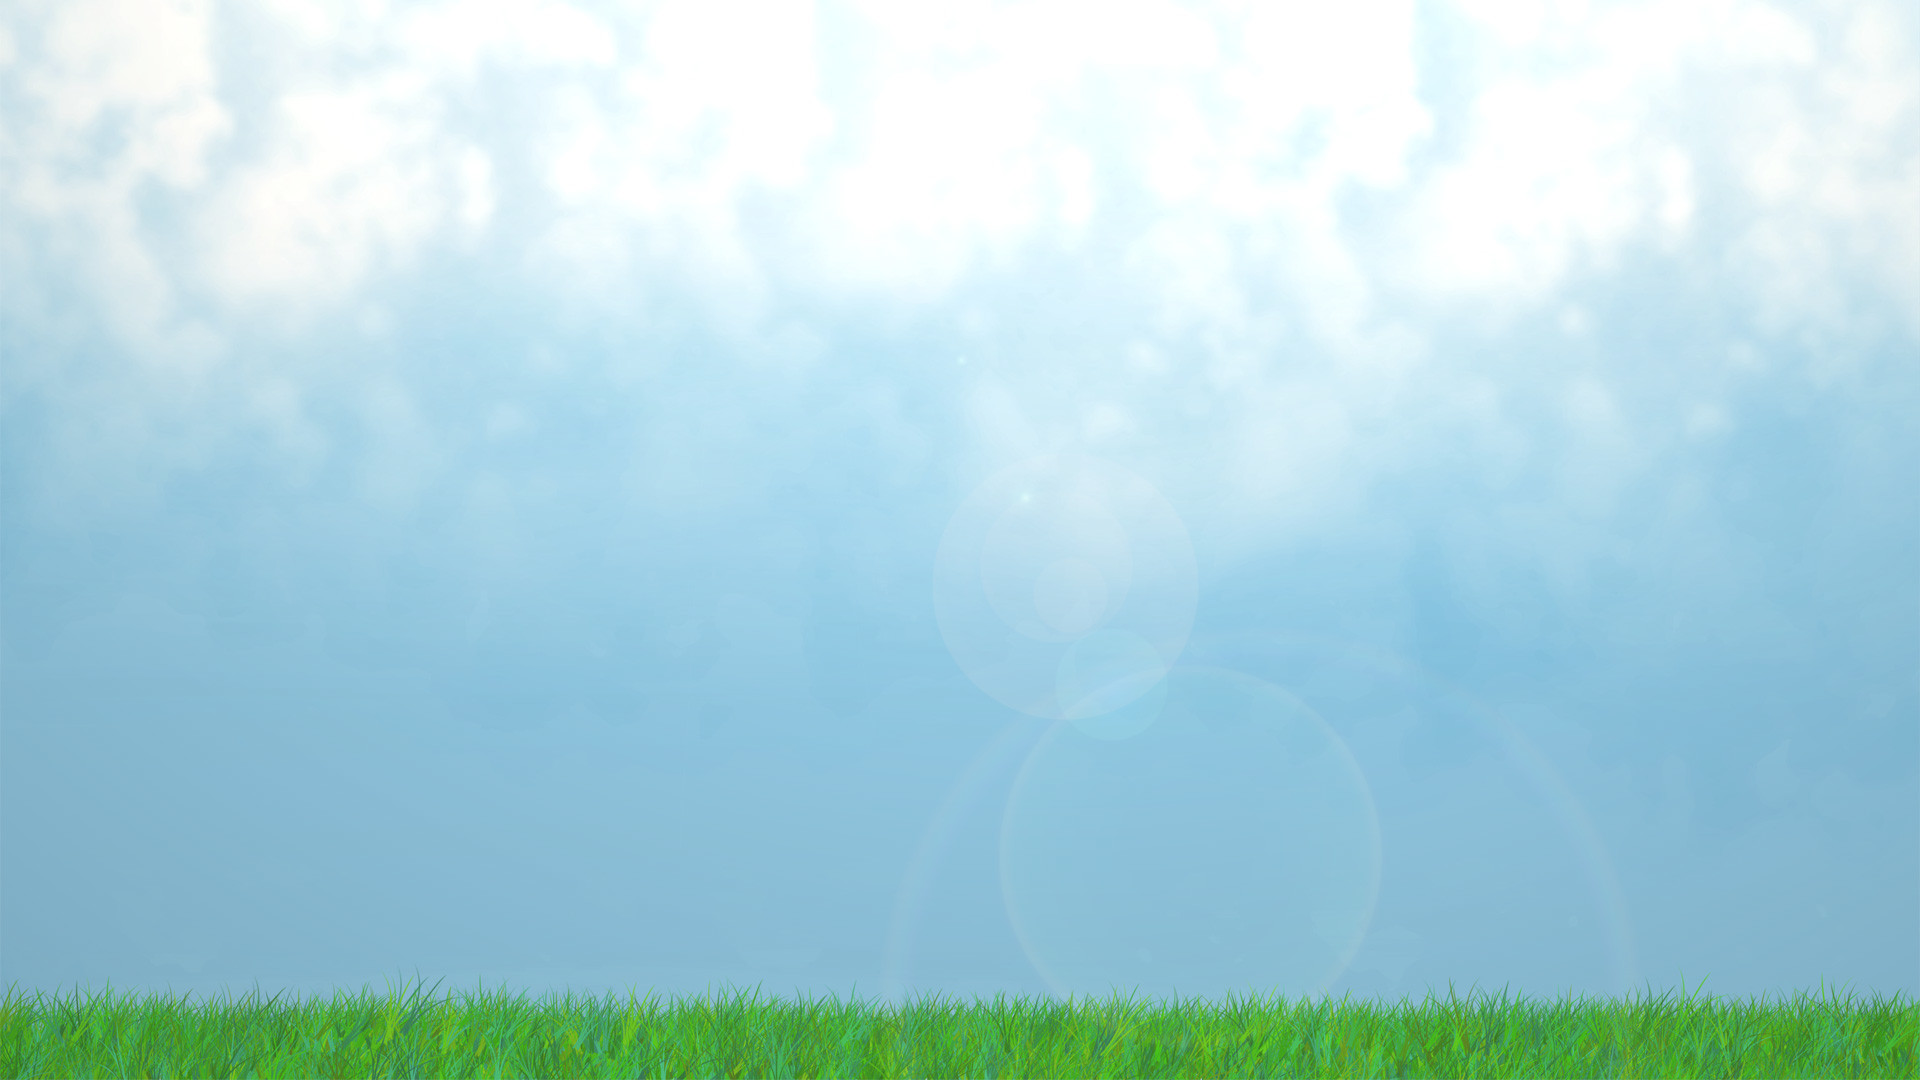 unibia s green grass and blue sky with clouds landscape wallpaper